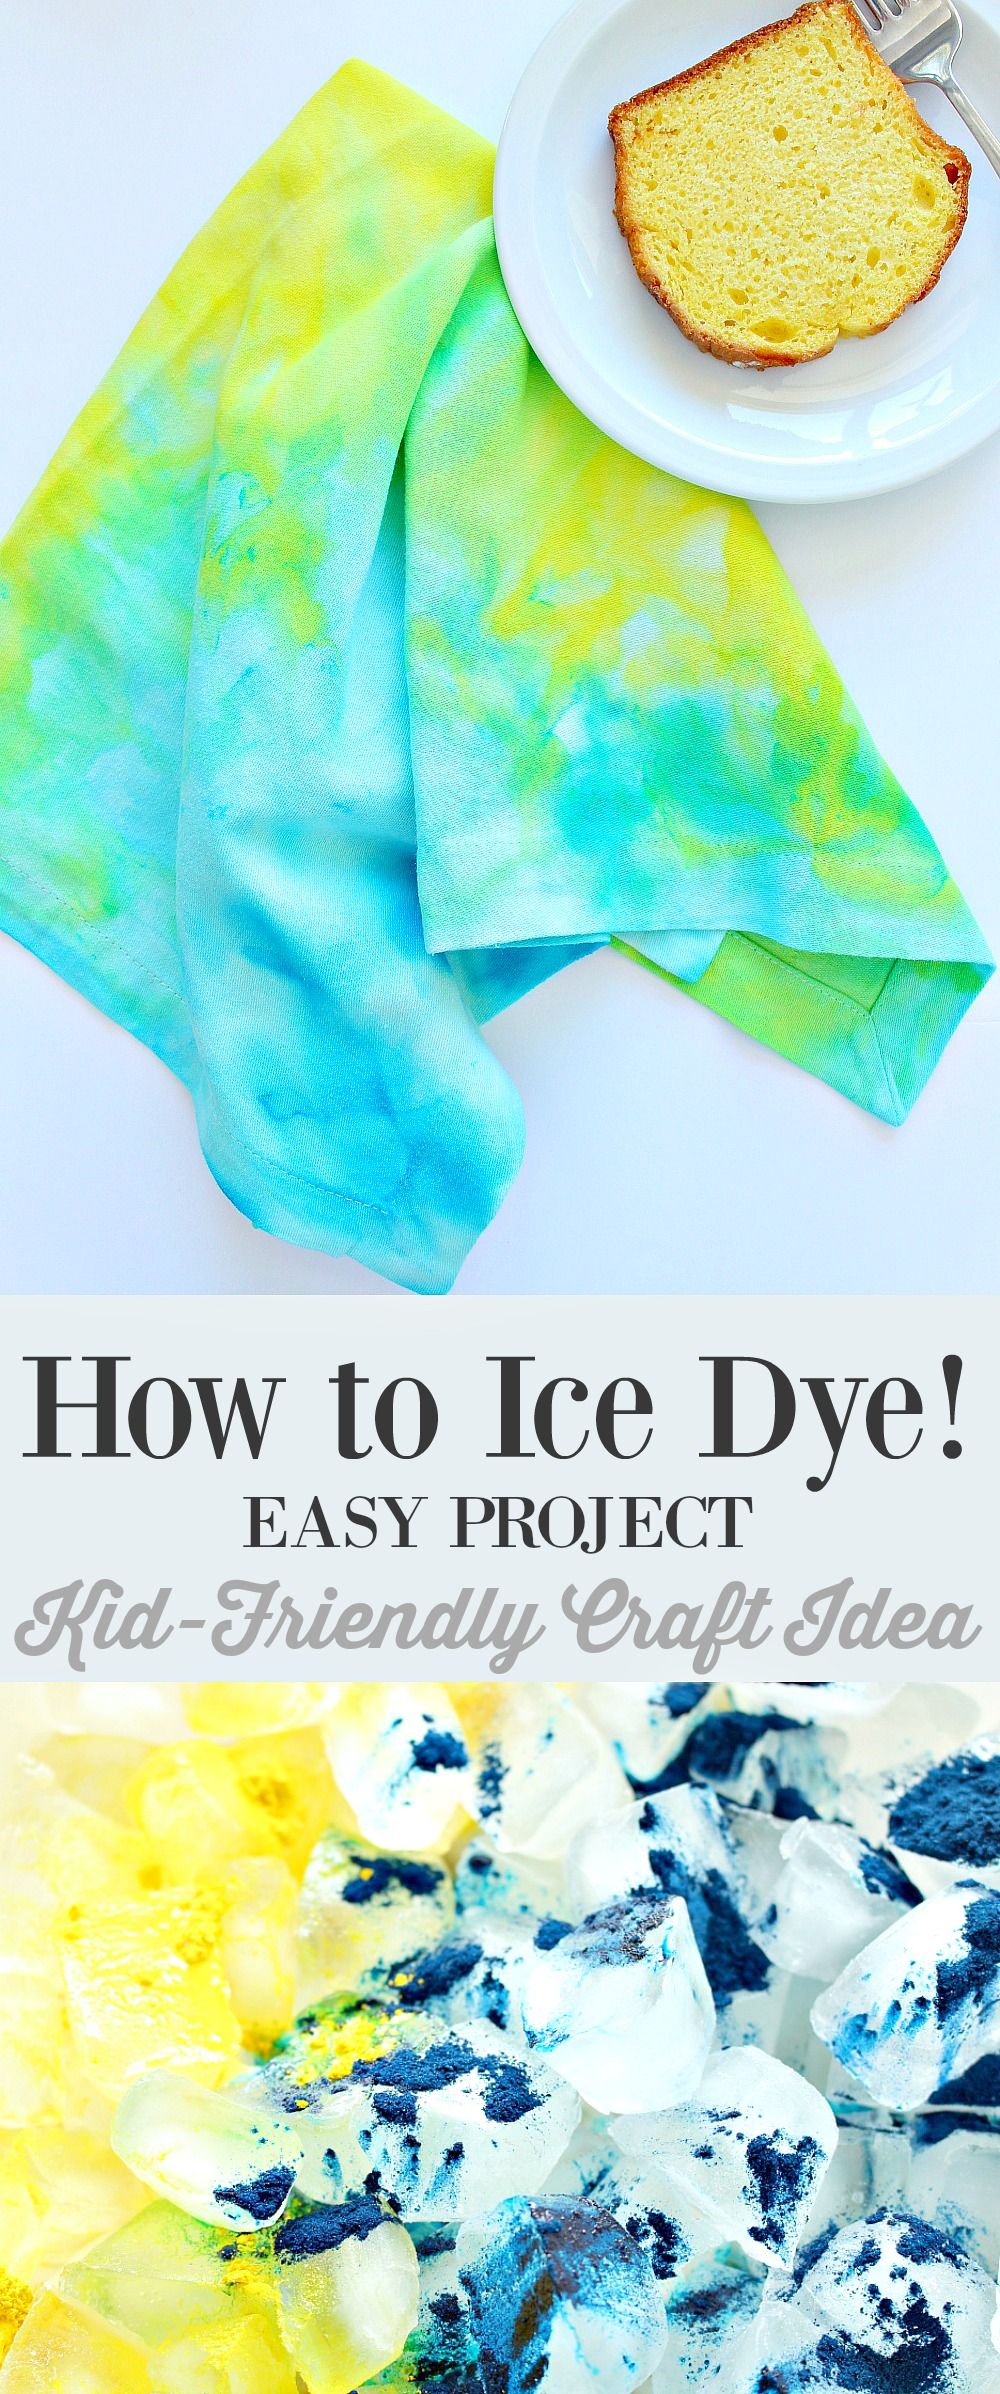 Ice dyeing instructions - Easy, kid-friendly craft idea!